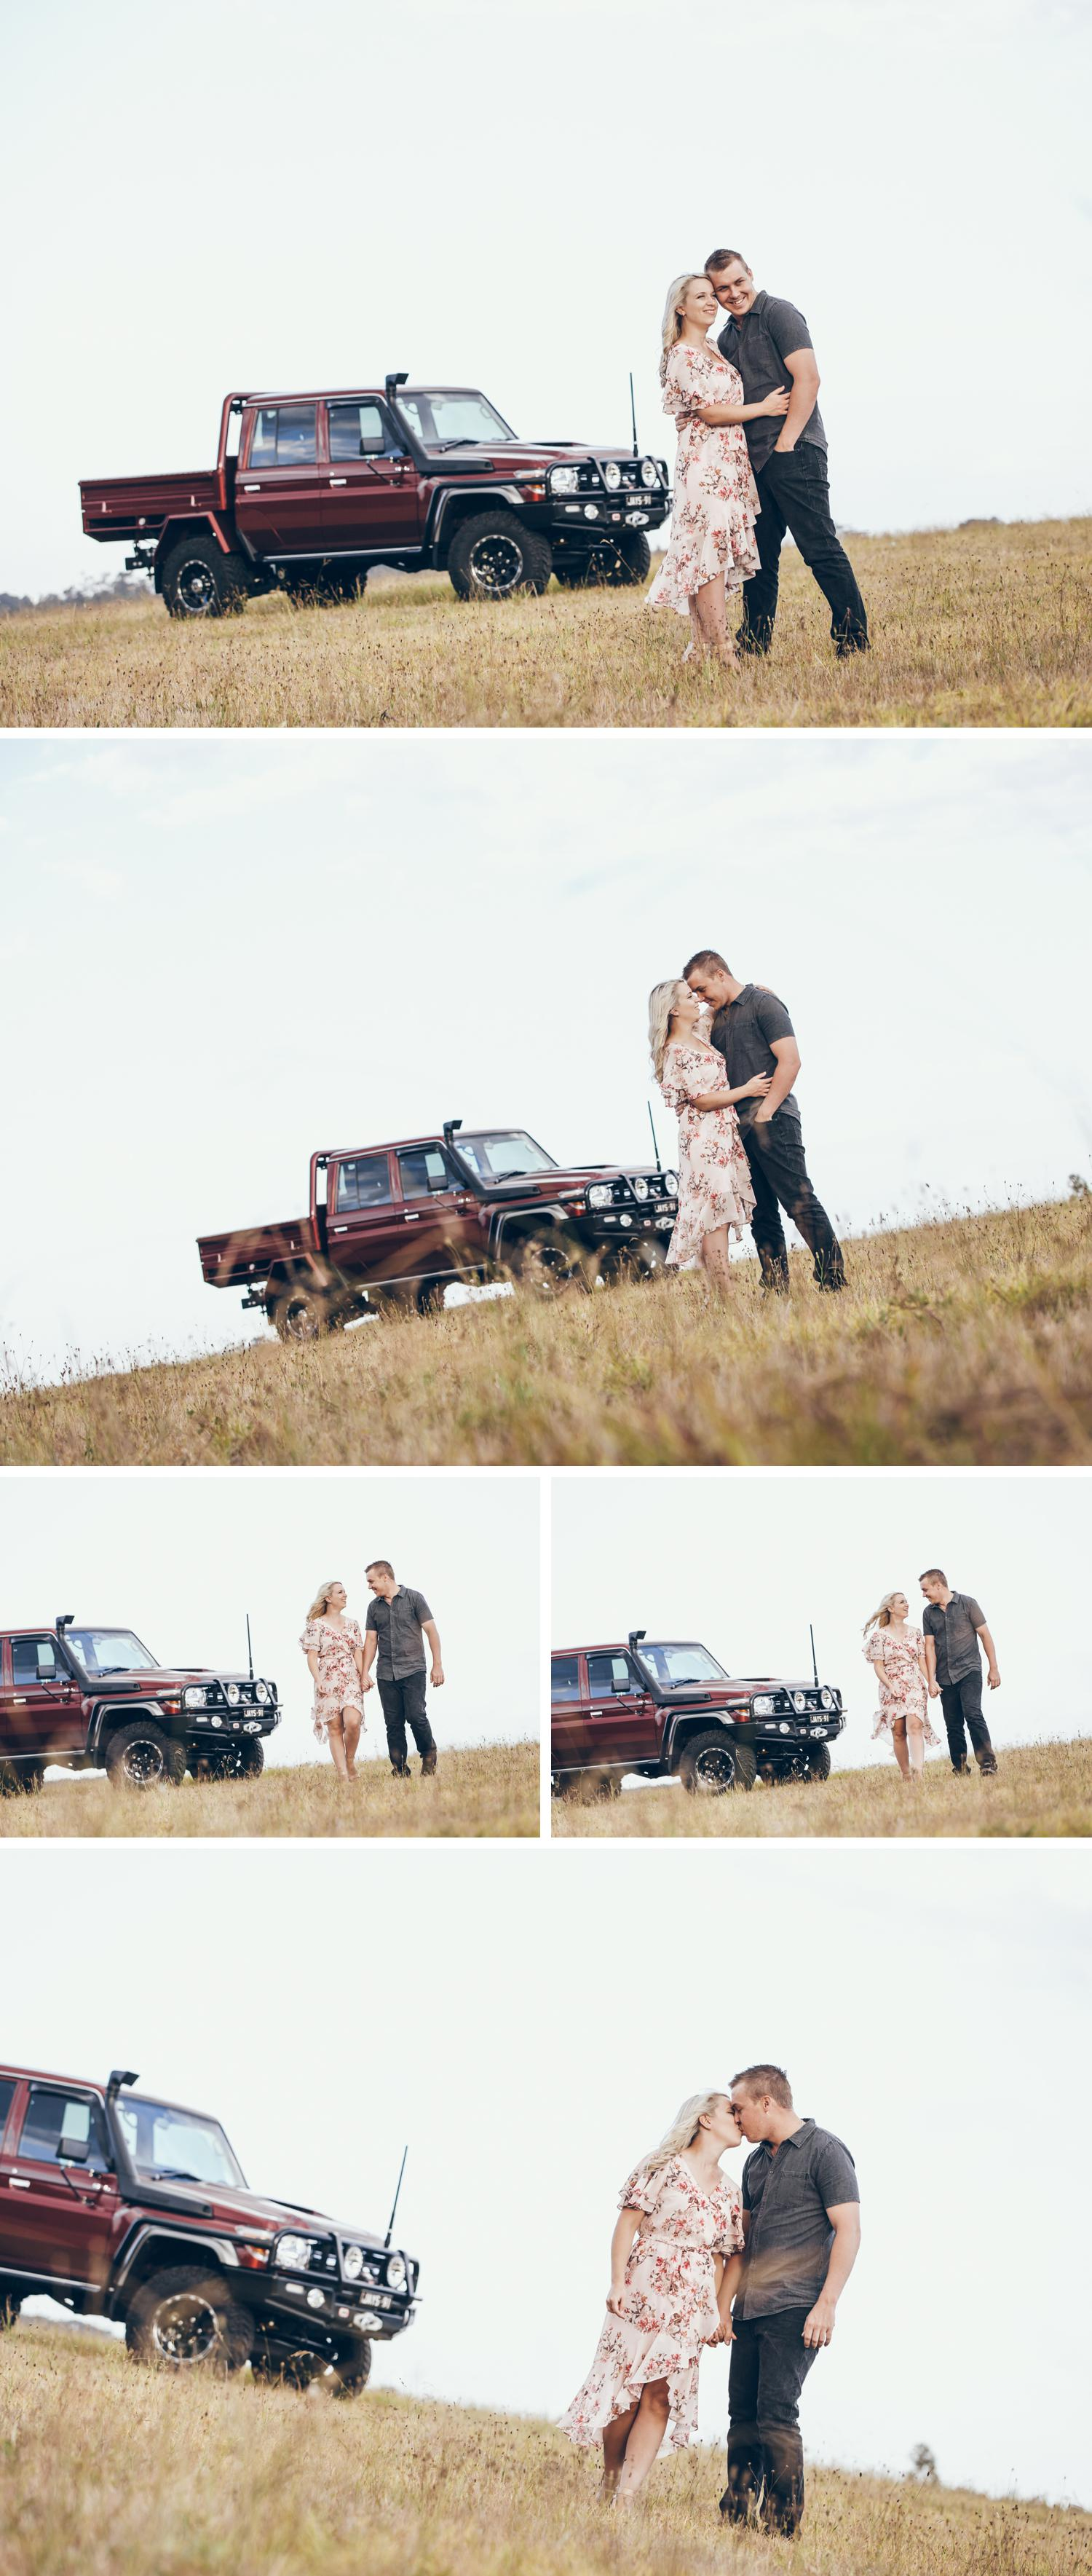 Couple Embracing Open Field Engagement Shoot, Wide Angle Shot of Bride and Groom Embracing in Long Grass by Danae Studios